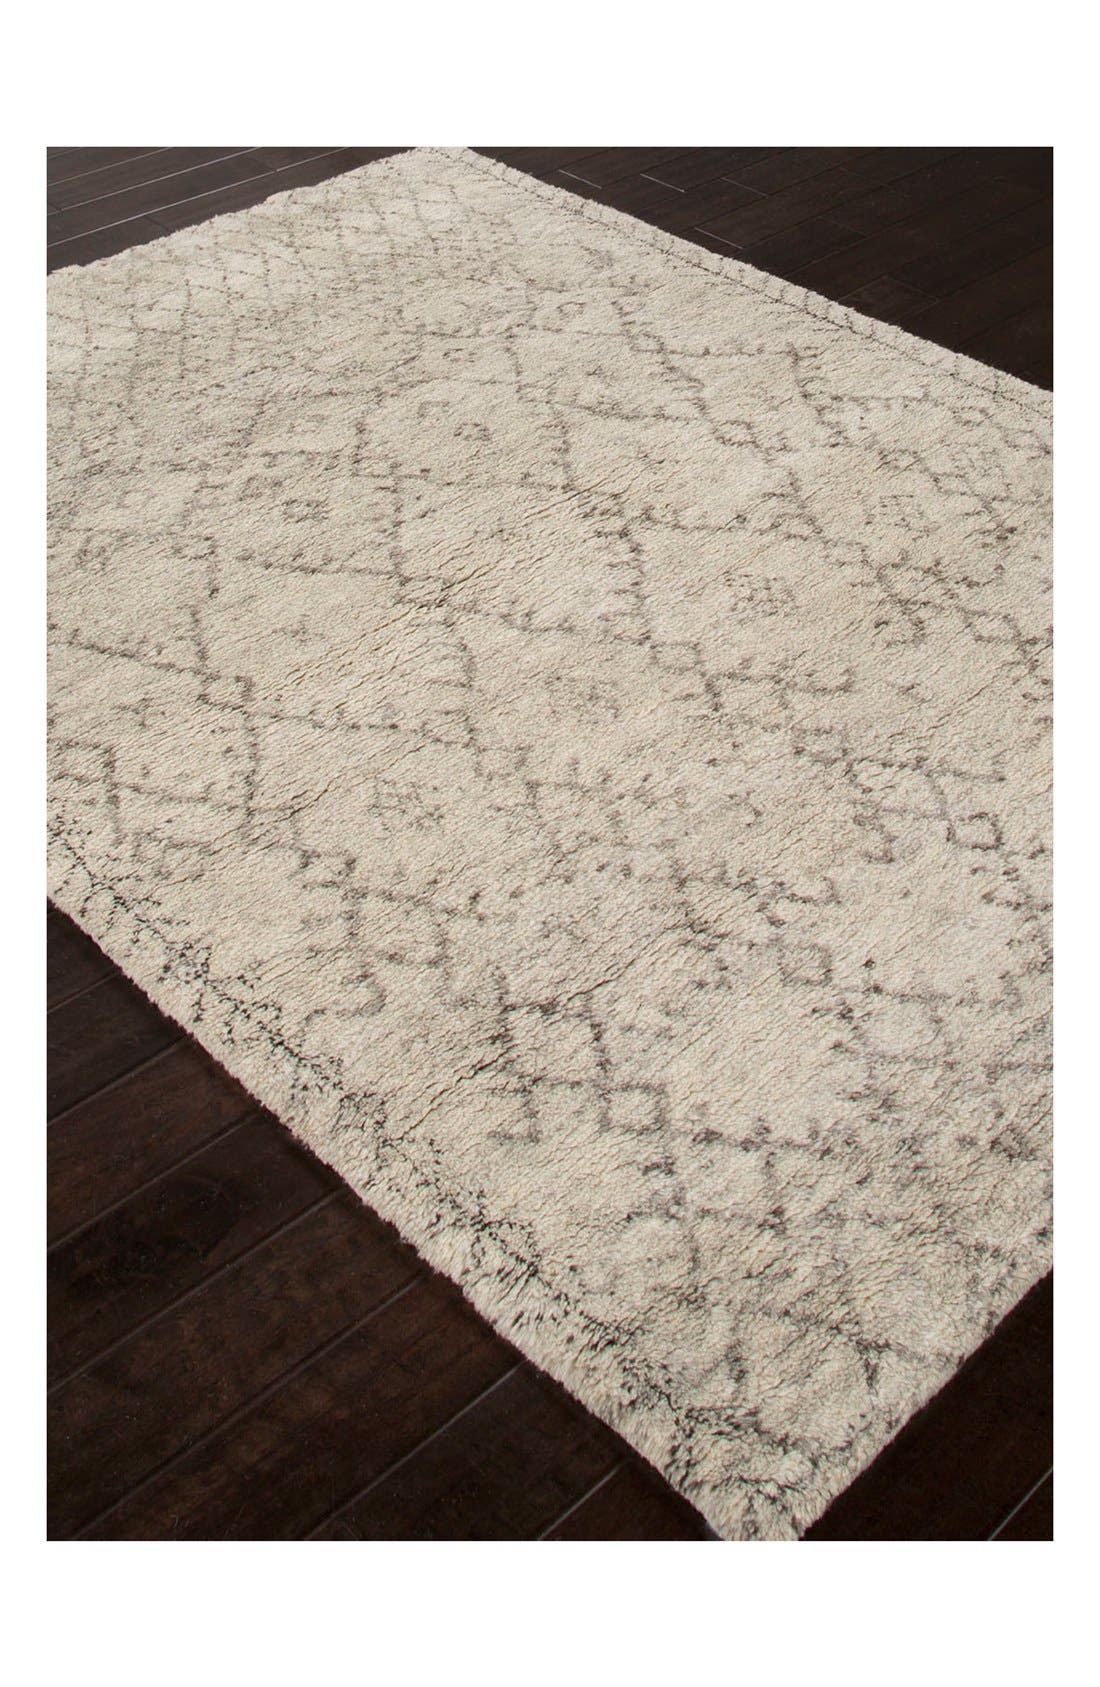 'Zola' Wool Area Rug,                             Alternate thumbnail 3, color,                             IVORY/ GREY